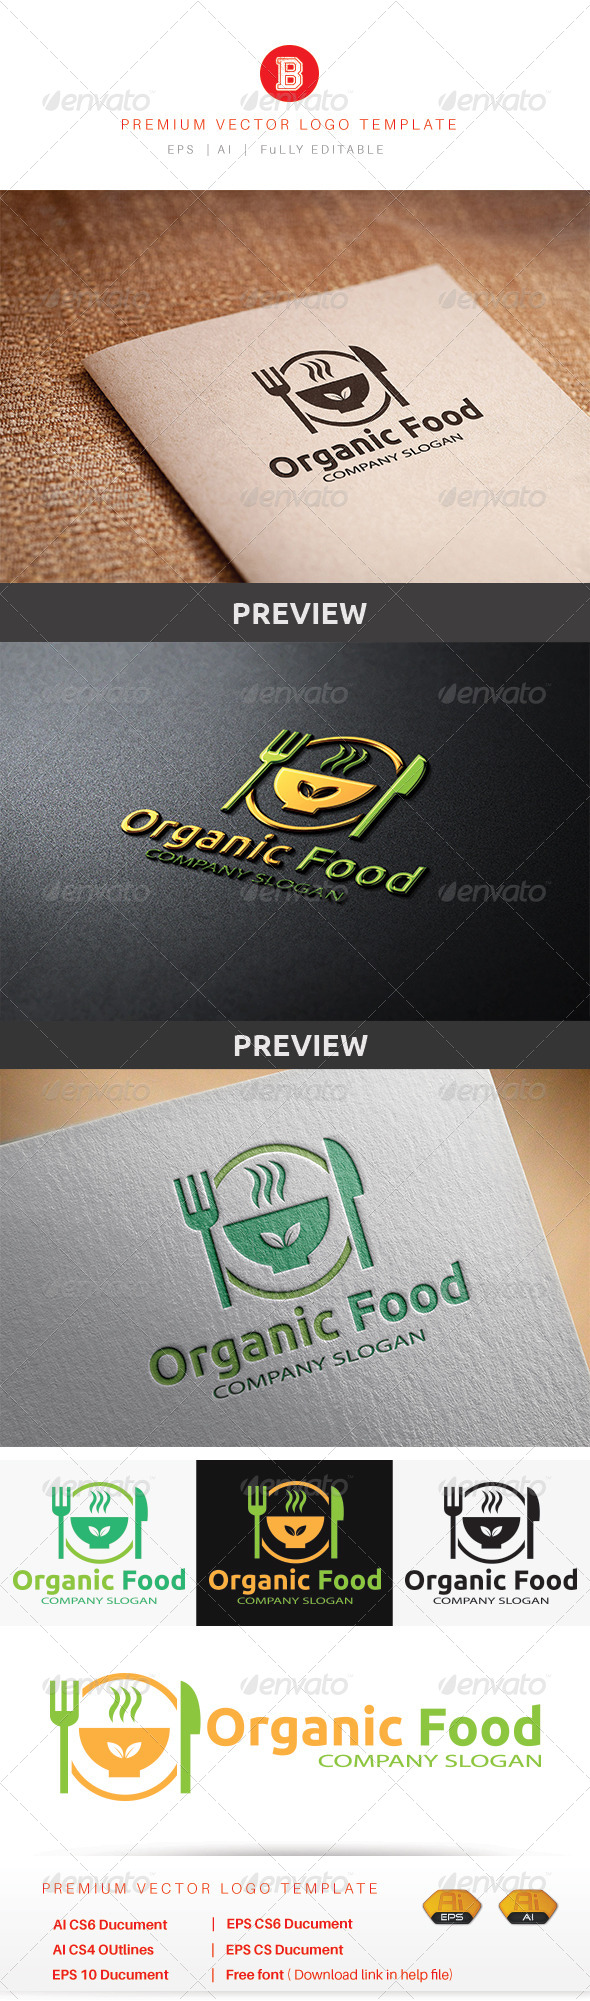 GraphicRiver Organic Food 8560865